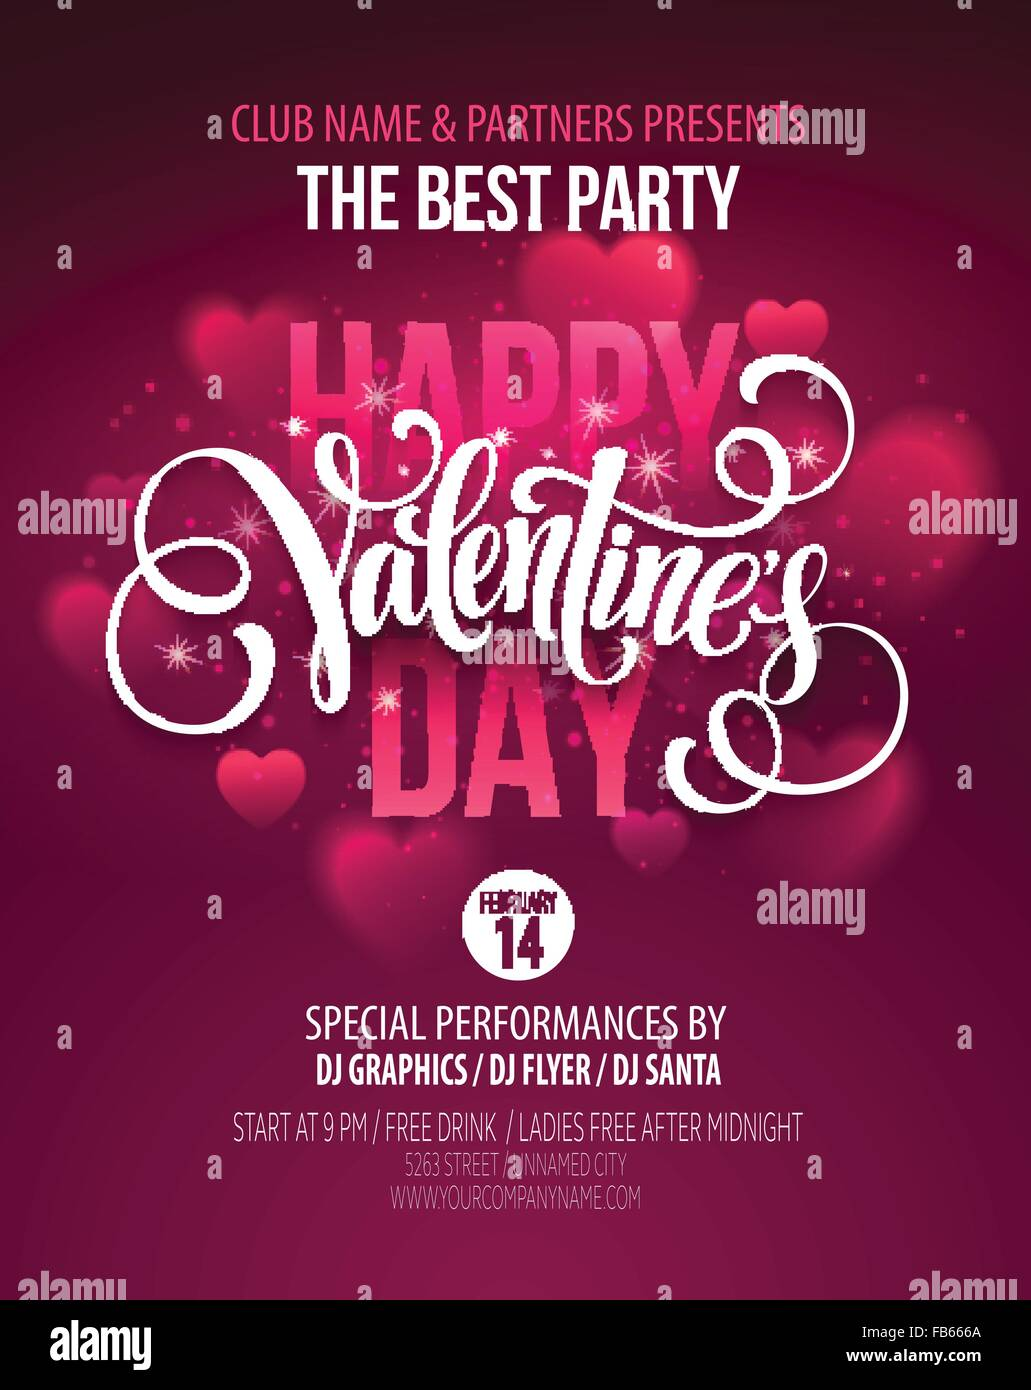 valentines day party poster design template of invitation flyer stock vector valentines day party poster design template of invitation flyer poster or greeting card vector illustration